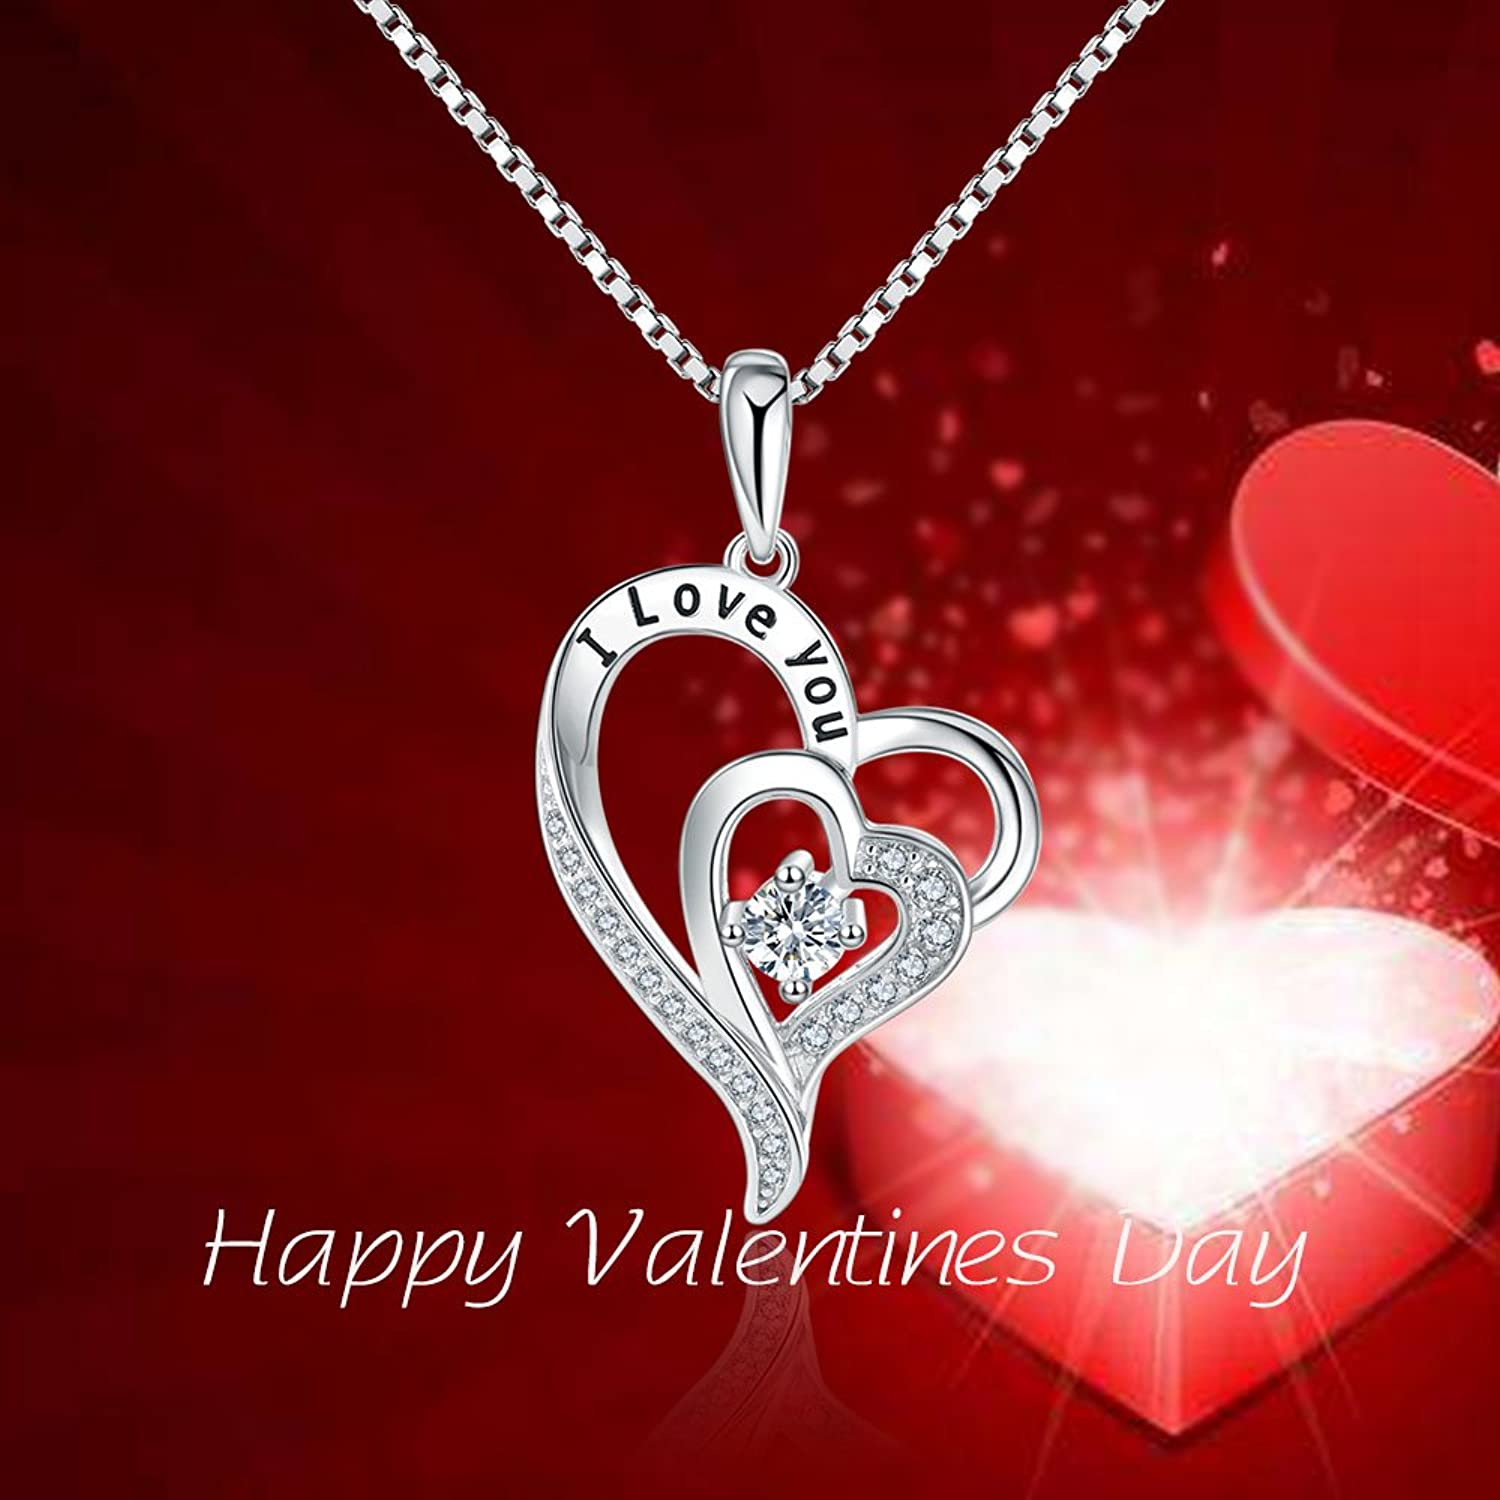 whr interchangeable pdpwithzoom product day necklace heart valentines valentine s stones